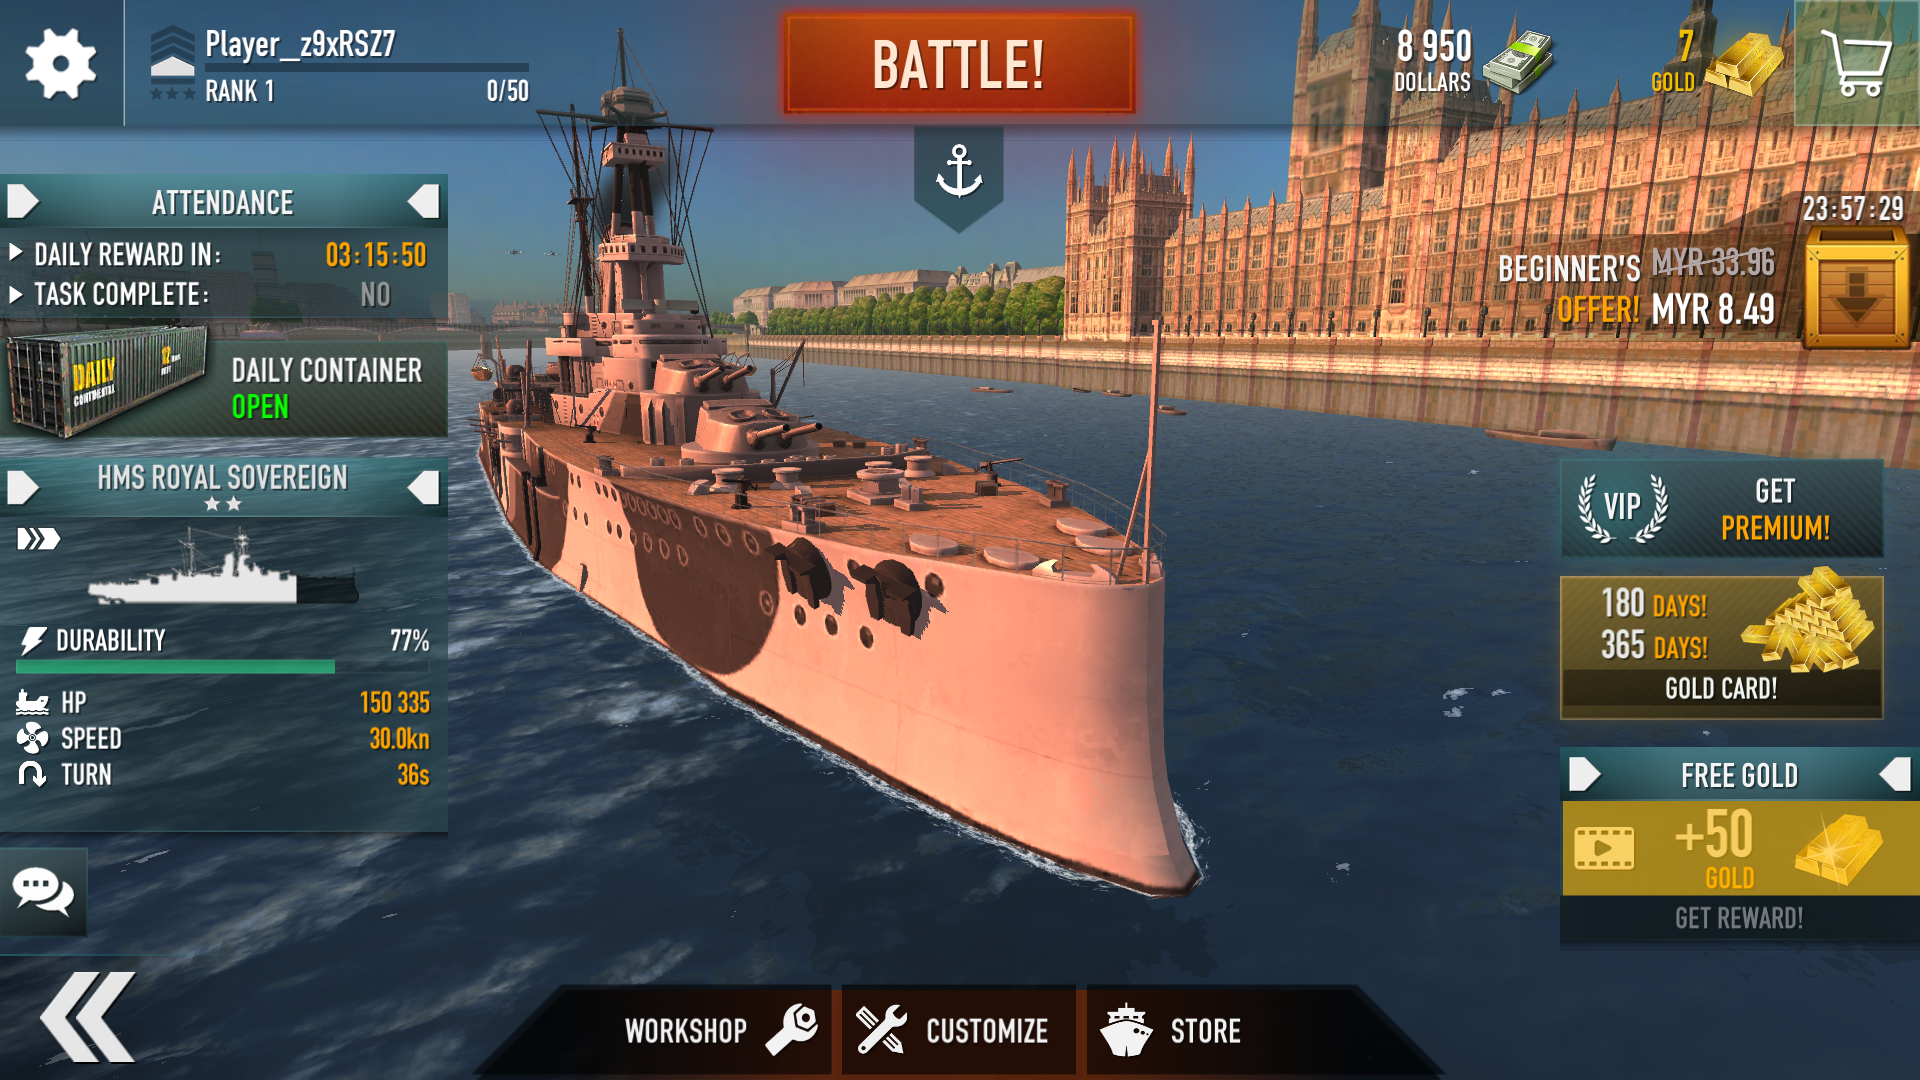 Battle of Warships: Naval Blitz Mod apk download - Cube Software